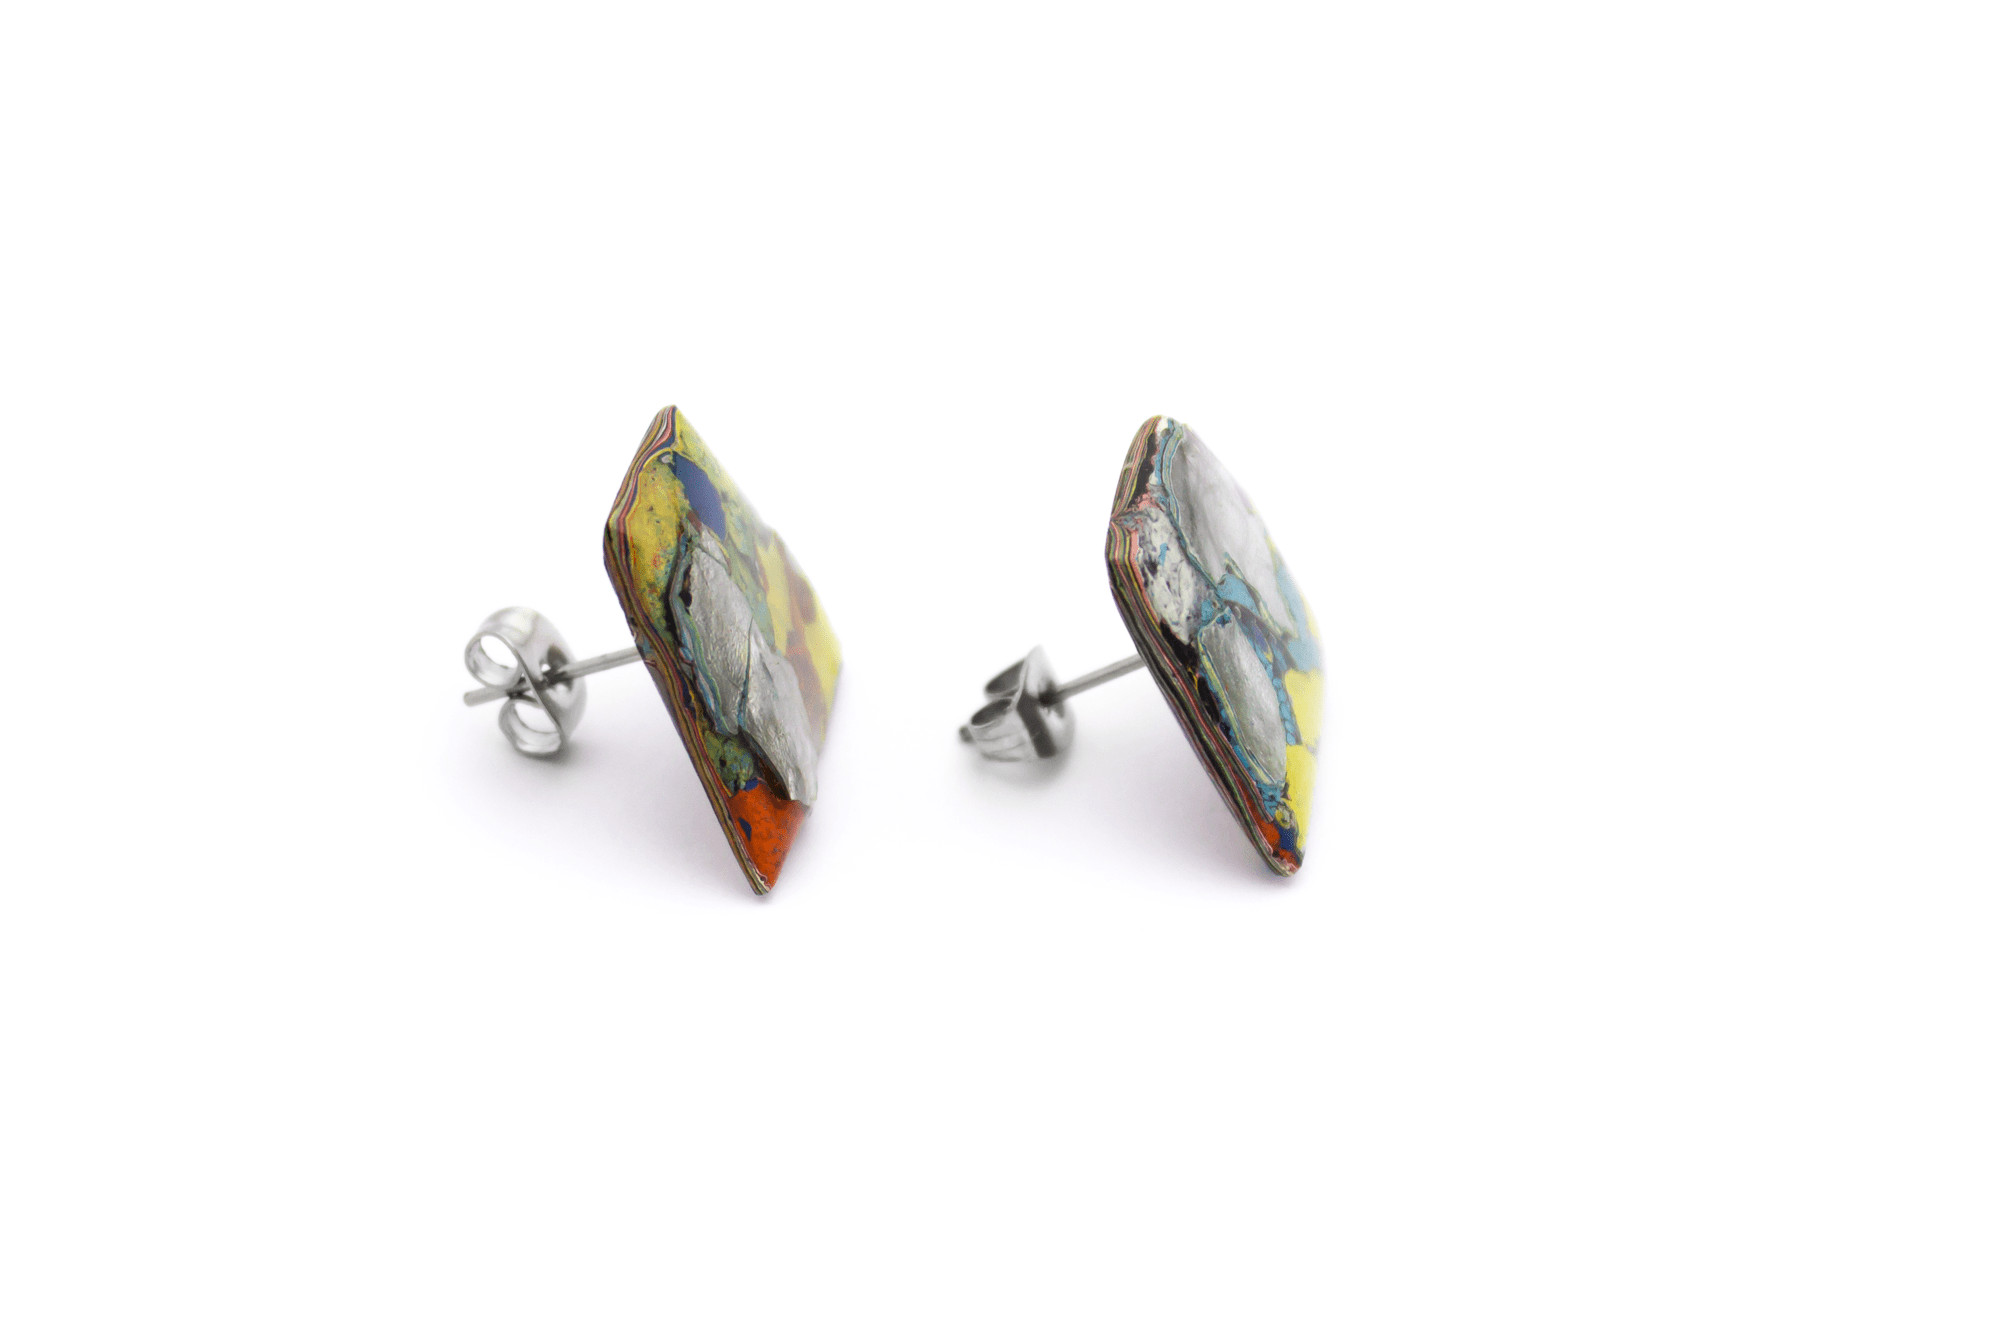 Unique graffiti stud - back earrings. One-of-a-kind and handmade in Melbourne from locally sourced, recycled materials.